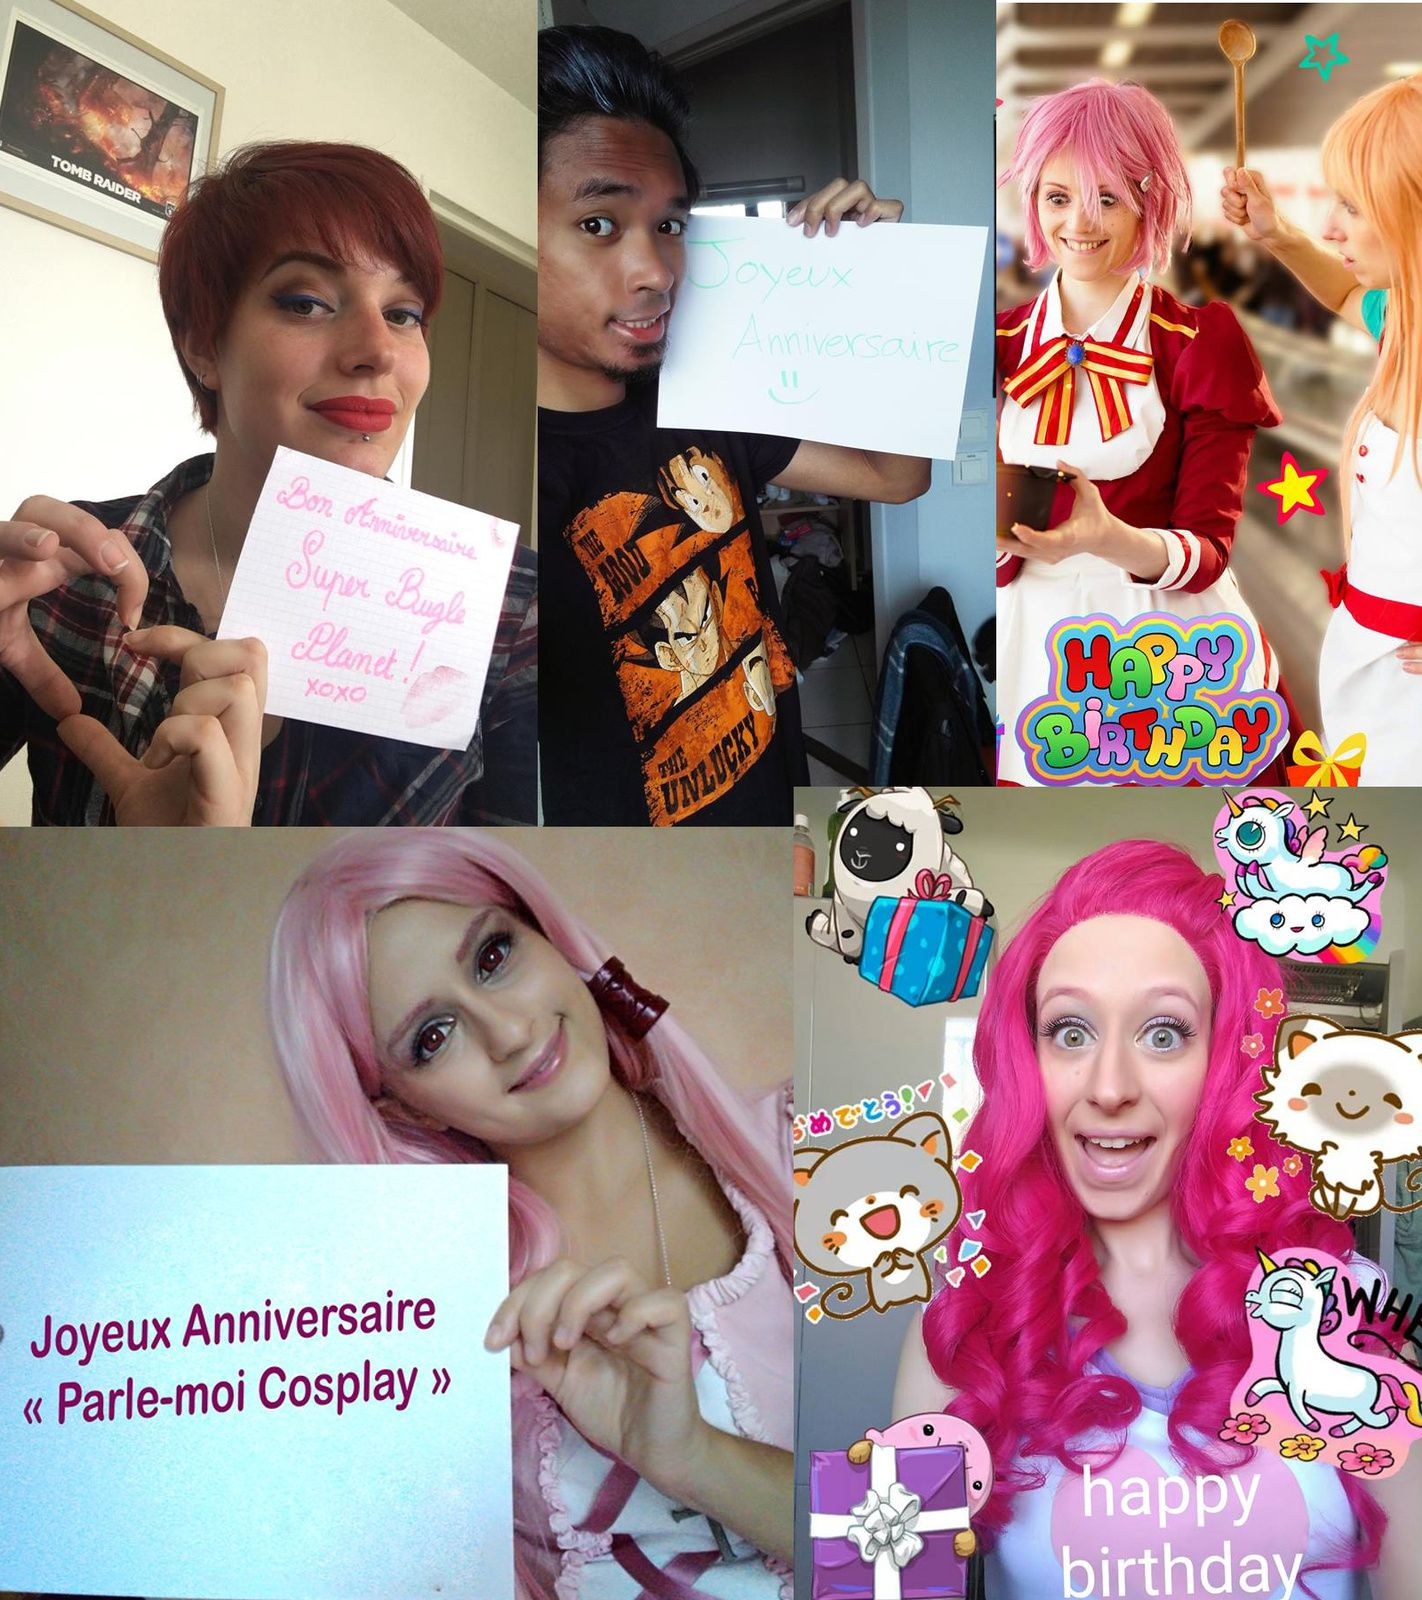 Parle-moi Cosplay #200 : Anniversaire !